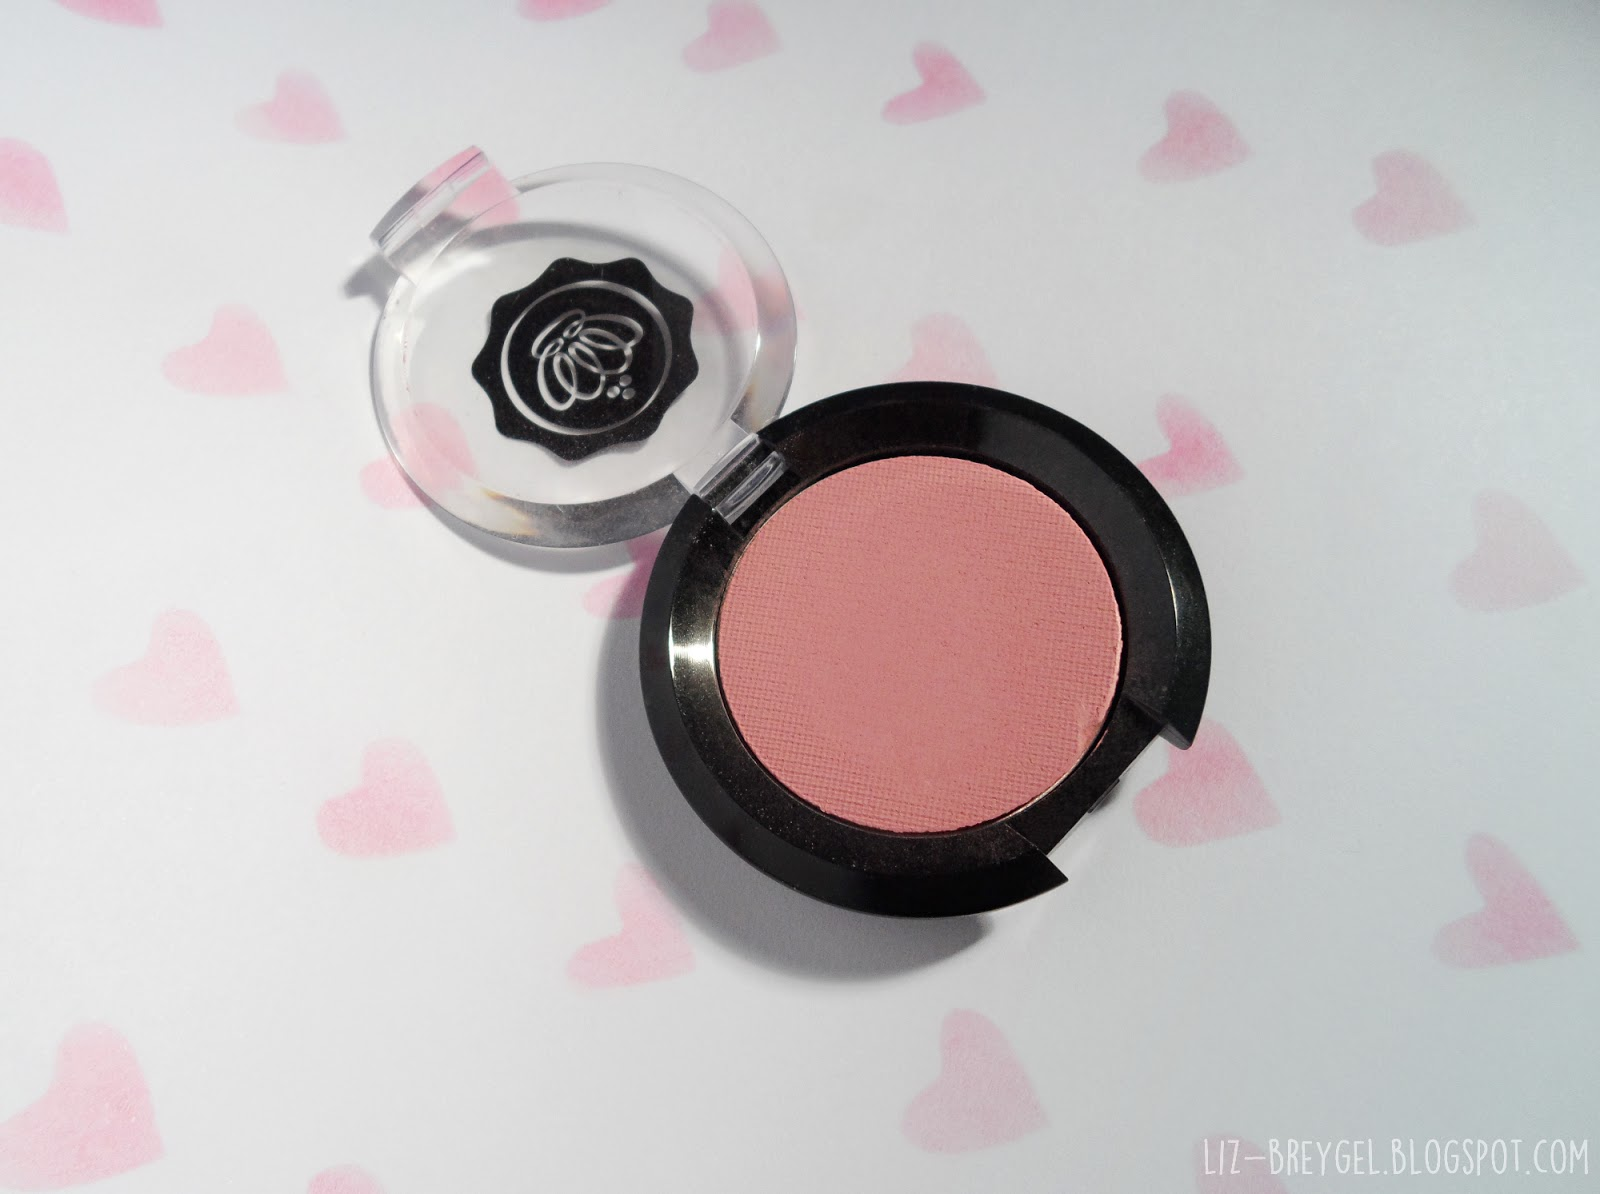 glossy box unboxing review pictures swatches products blush for pale skin